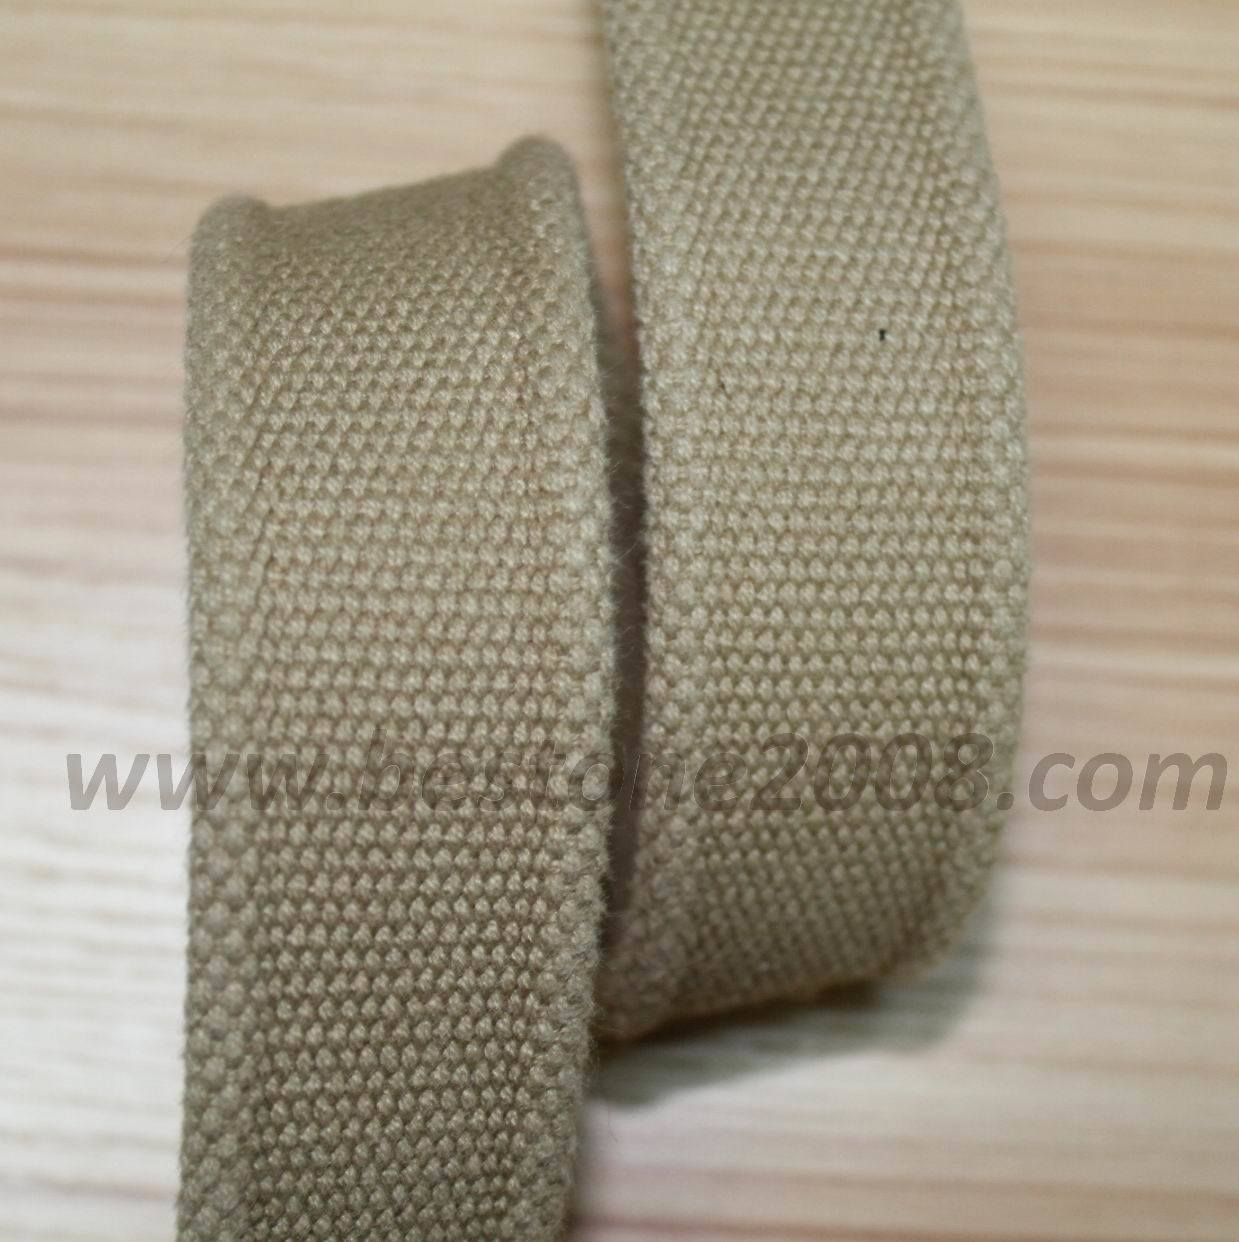 Factory High Quality Cotton Ribbon for Bag/Garment #1312-26